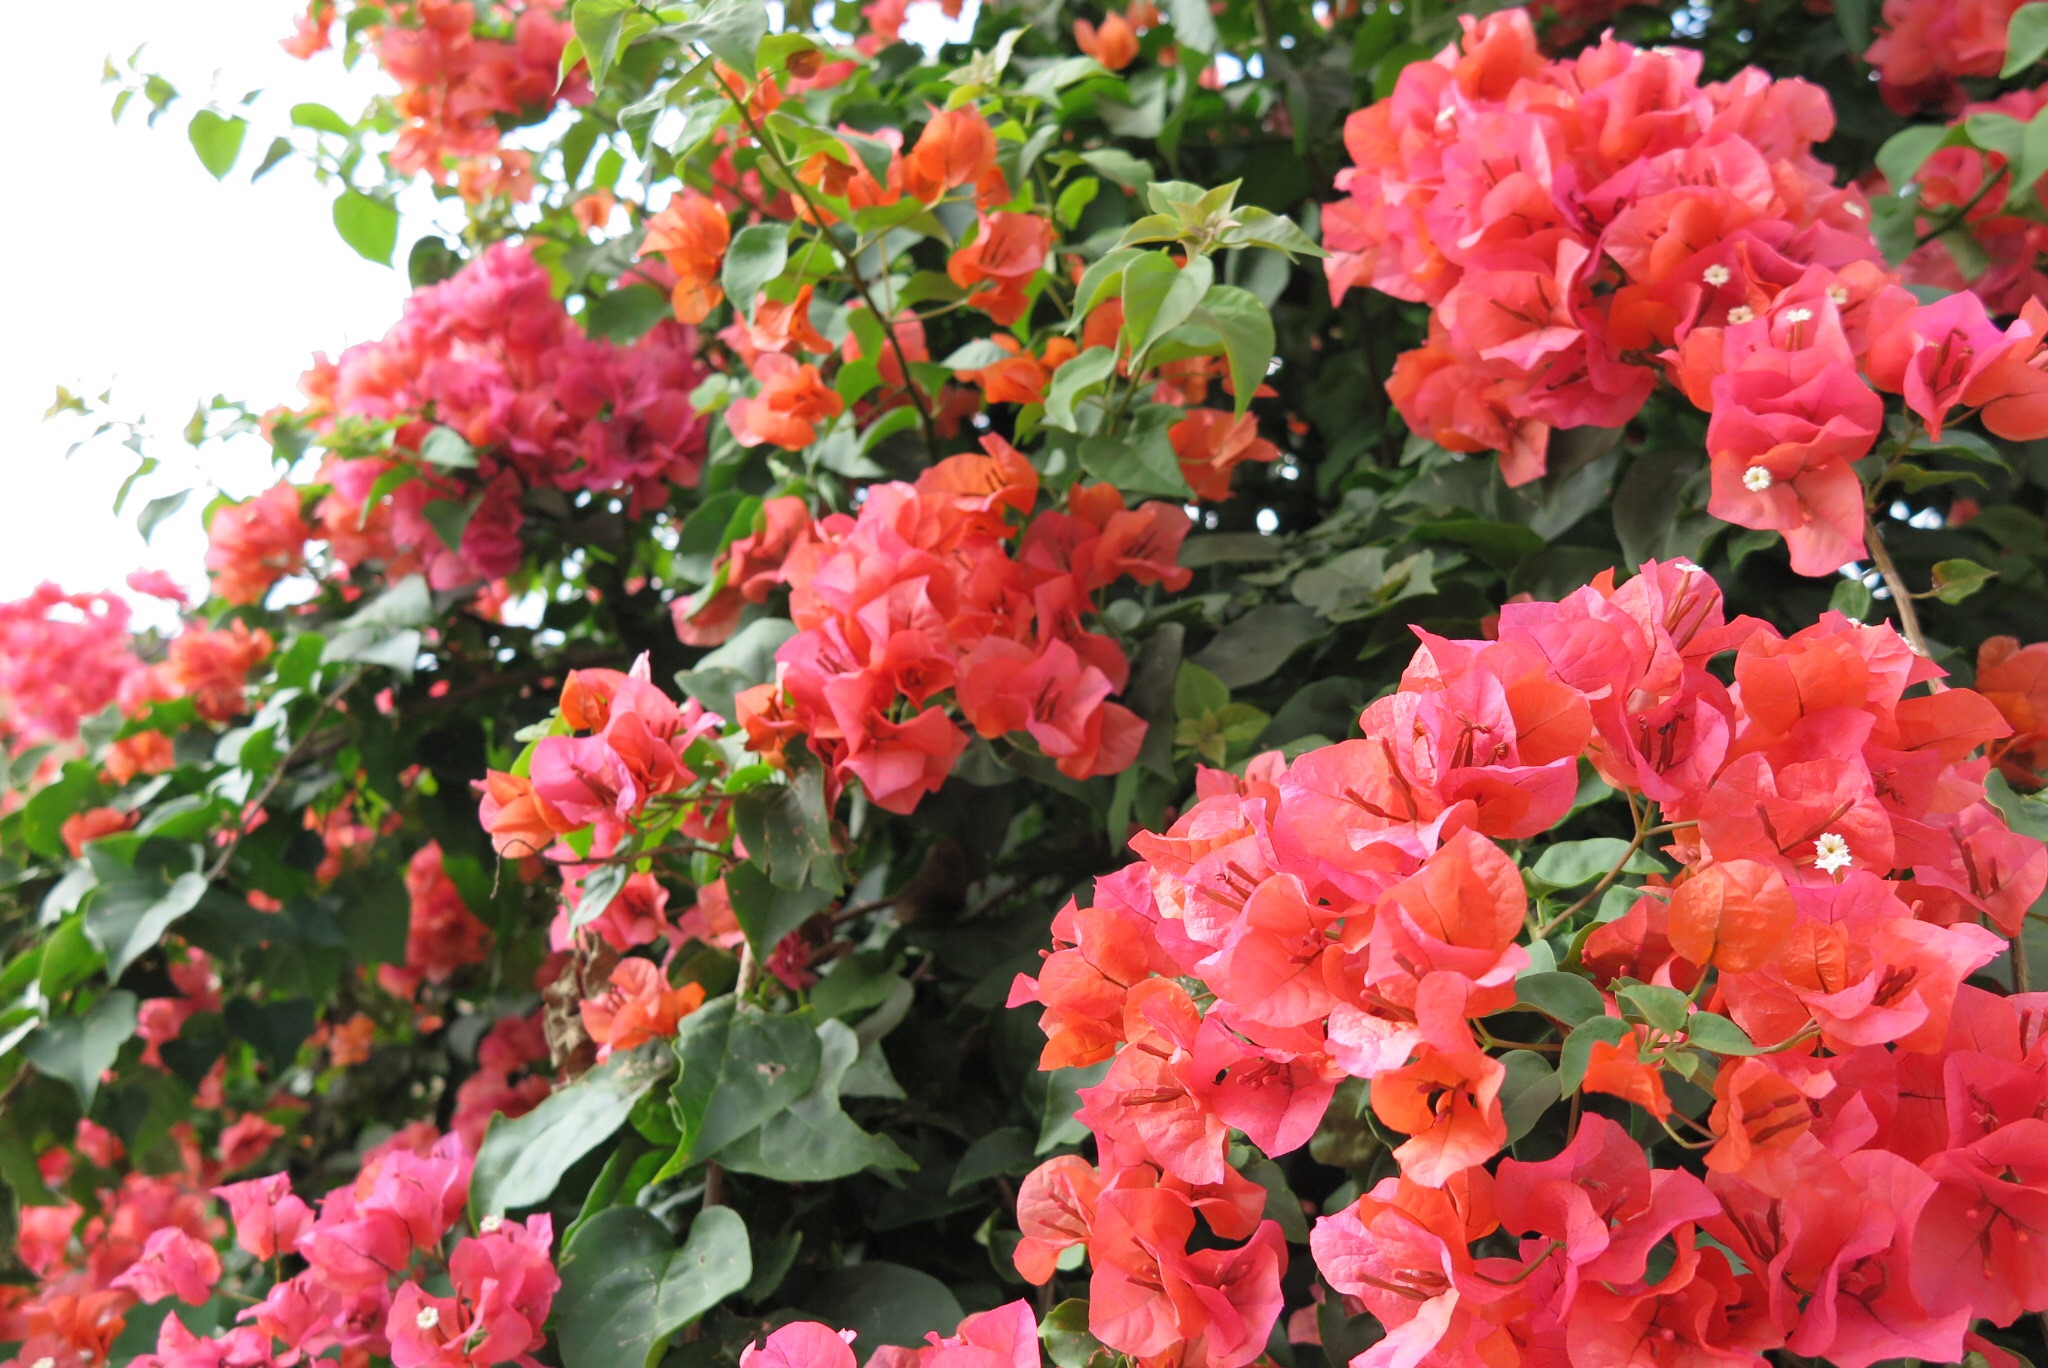 Bougainvillea exploding with cheerful color!